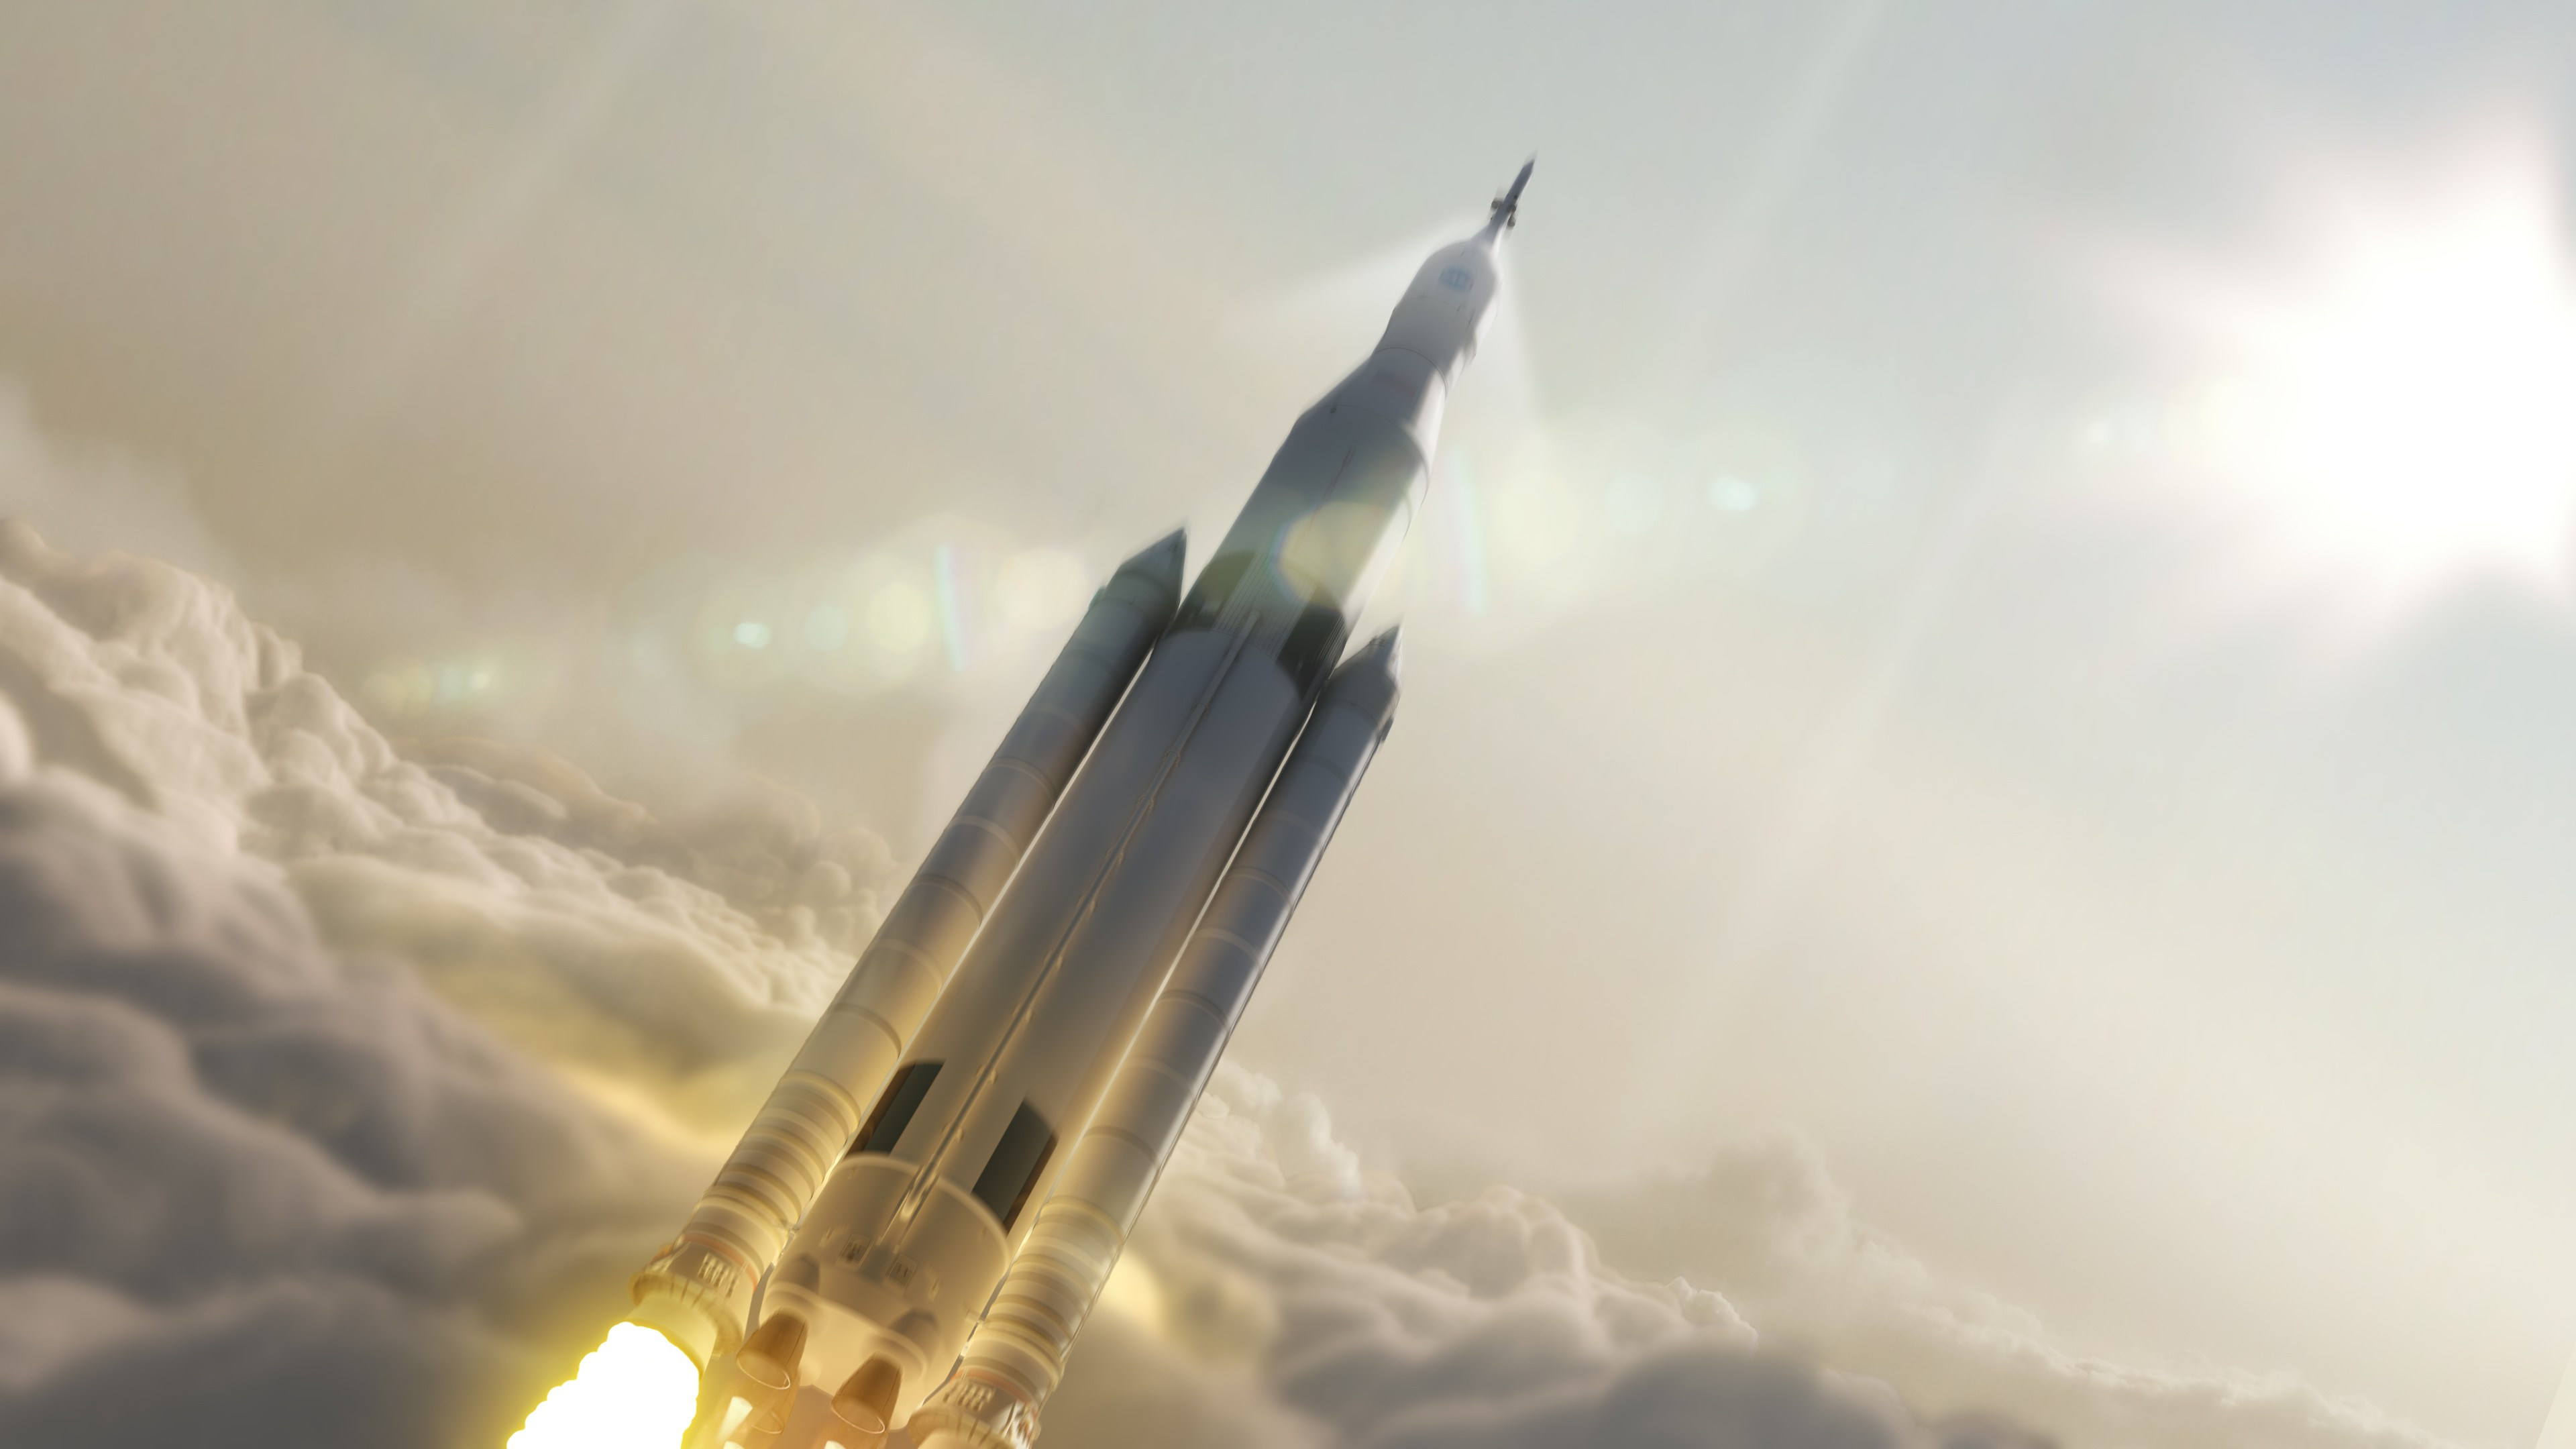 Building the Largest Rocket in History Calls for the Largest Tools